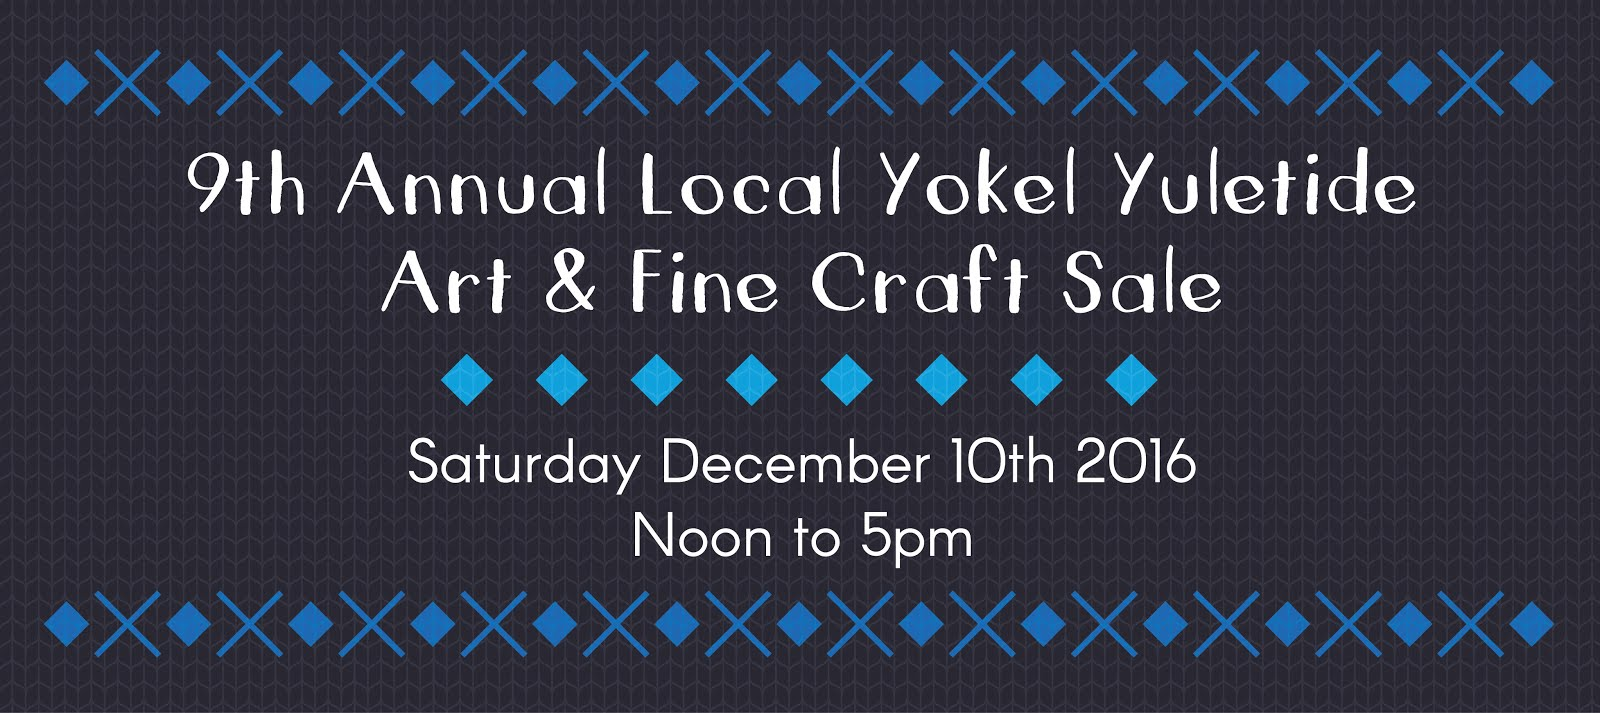 Local Yokel Yuletide Art & Craft Sale